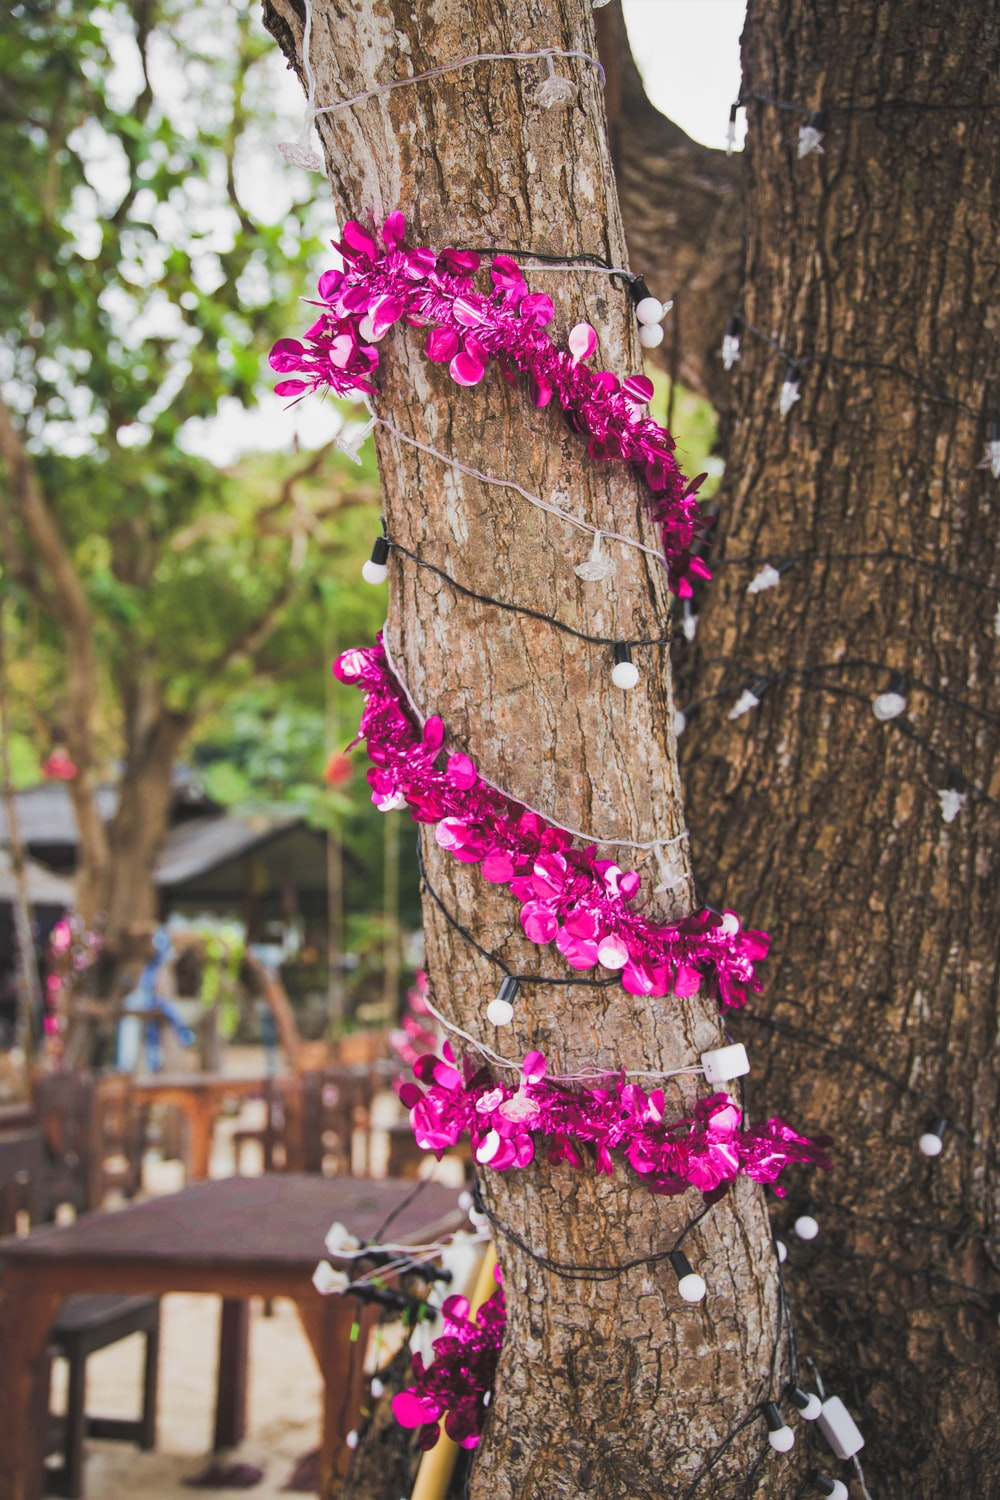 Flower petals pictures hq download free images on unsplash purple petaled flowers and mini string lights wrapped around tree trunk mightylinksfo